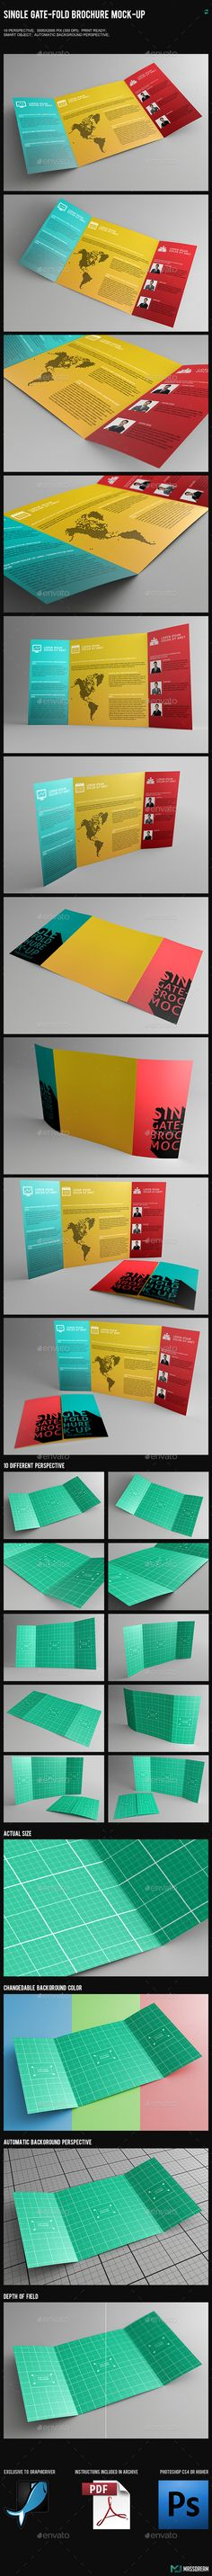 A Gatefold Brochure Mockup  Download HttpGraphicriverNet